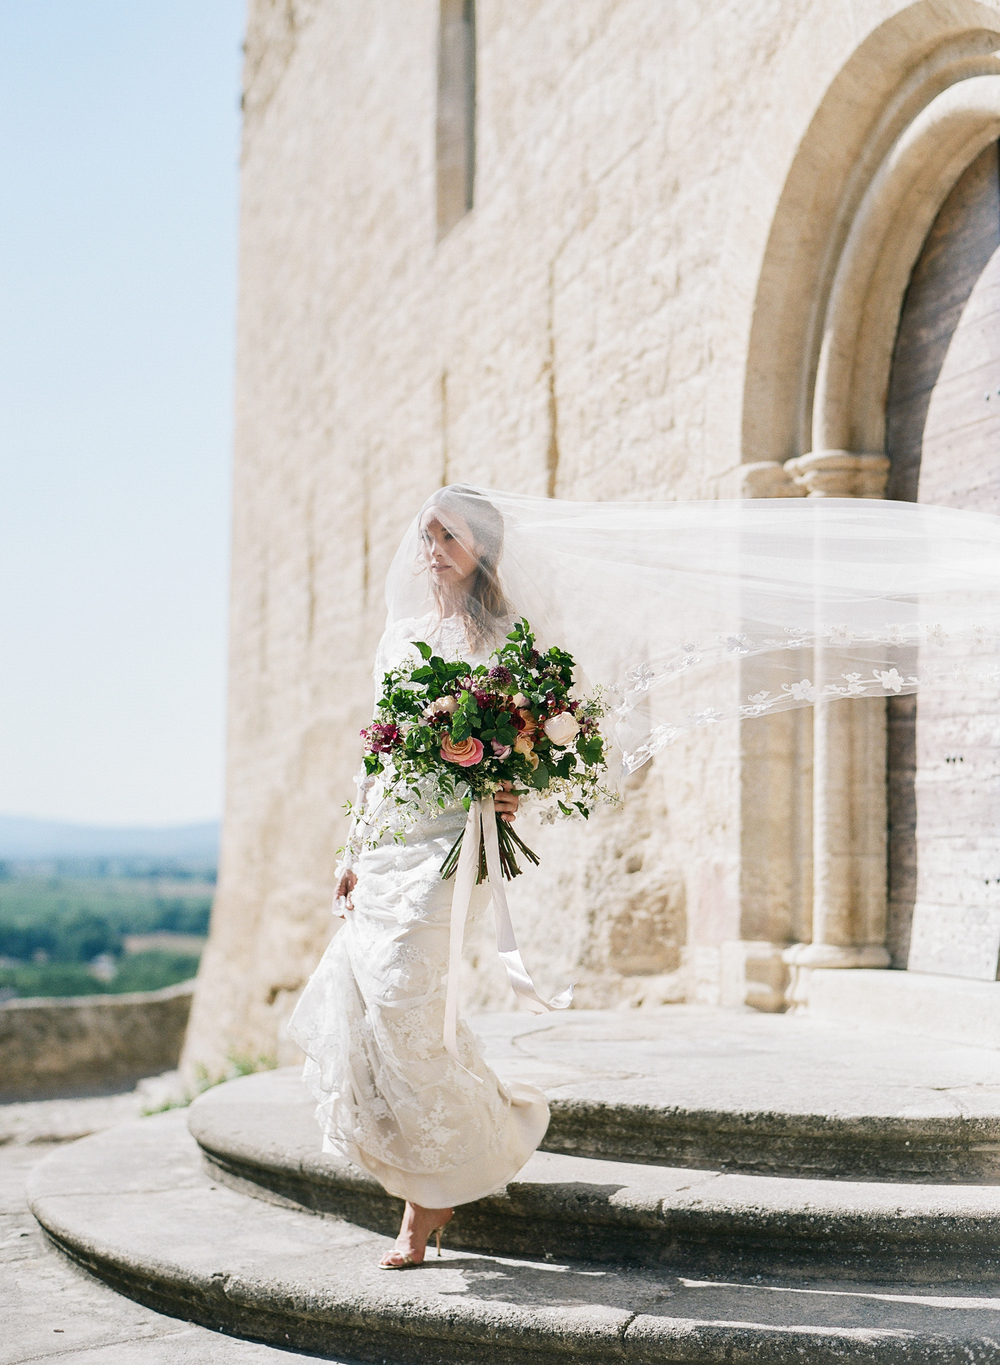 The bride holds a large, rustic, colorful bouquet, and walks down the church steps with her lace Claire Pettibone veil streaming behind her in the wind; photo by Sylvie Gil